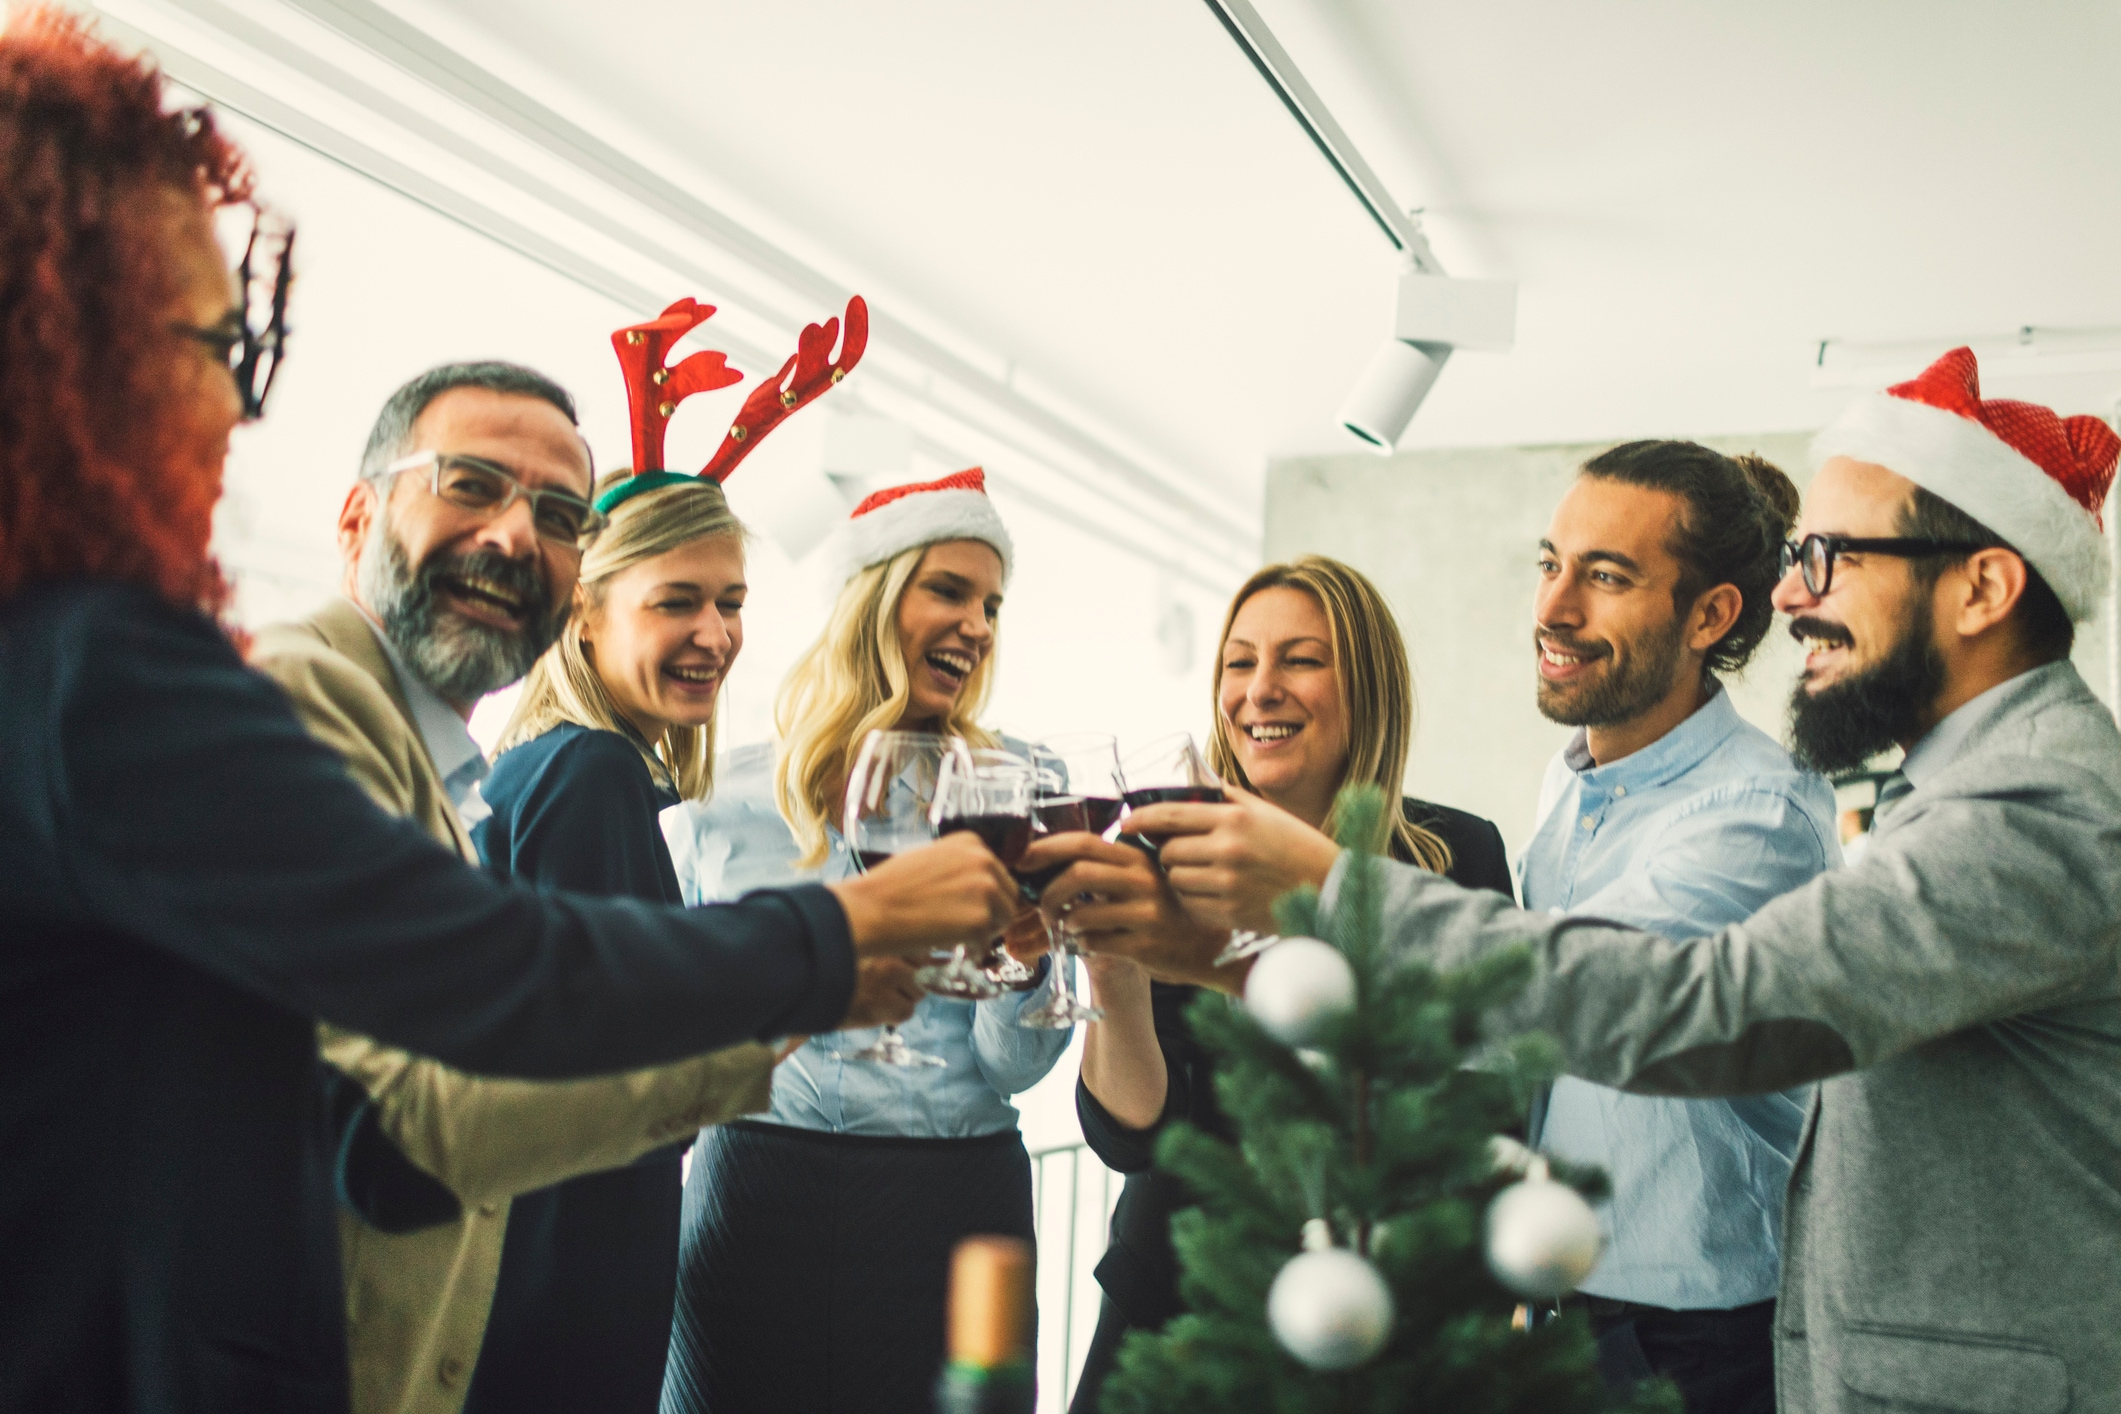 How Businesses Can Celebrate Employees This Holiday Season